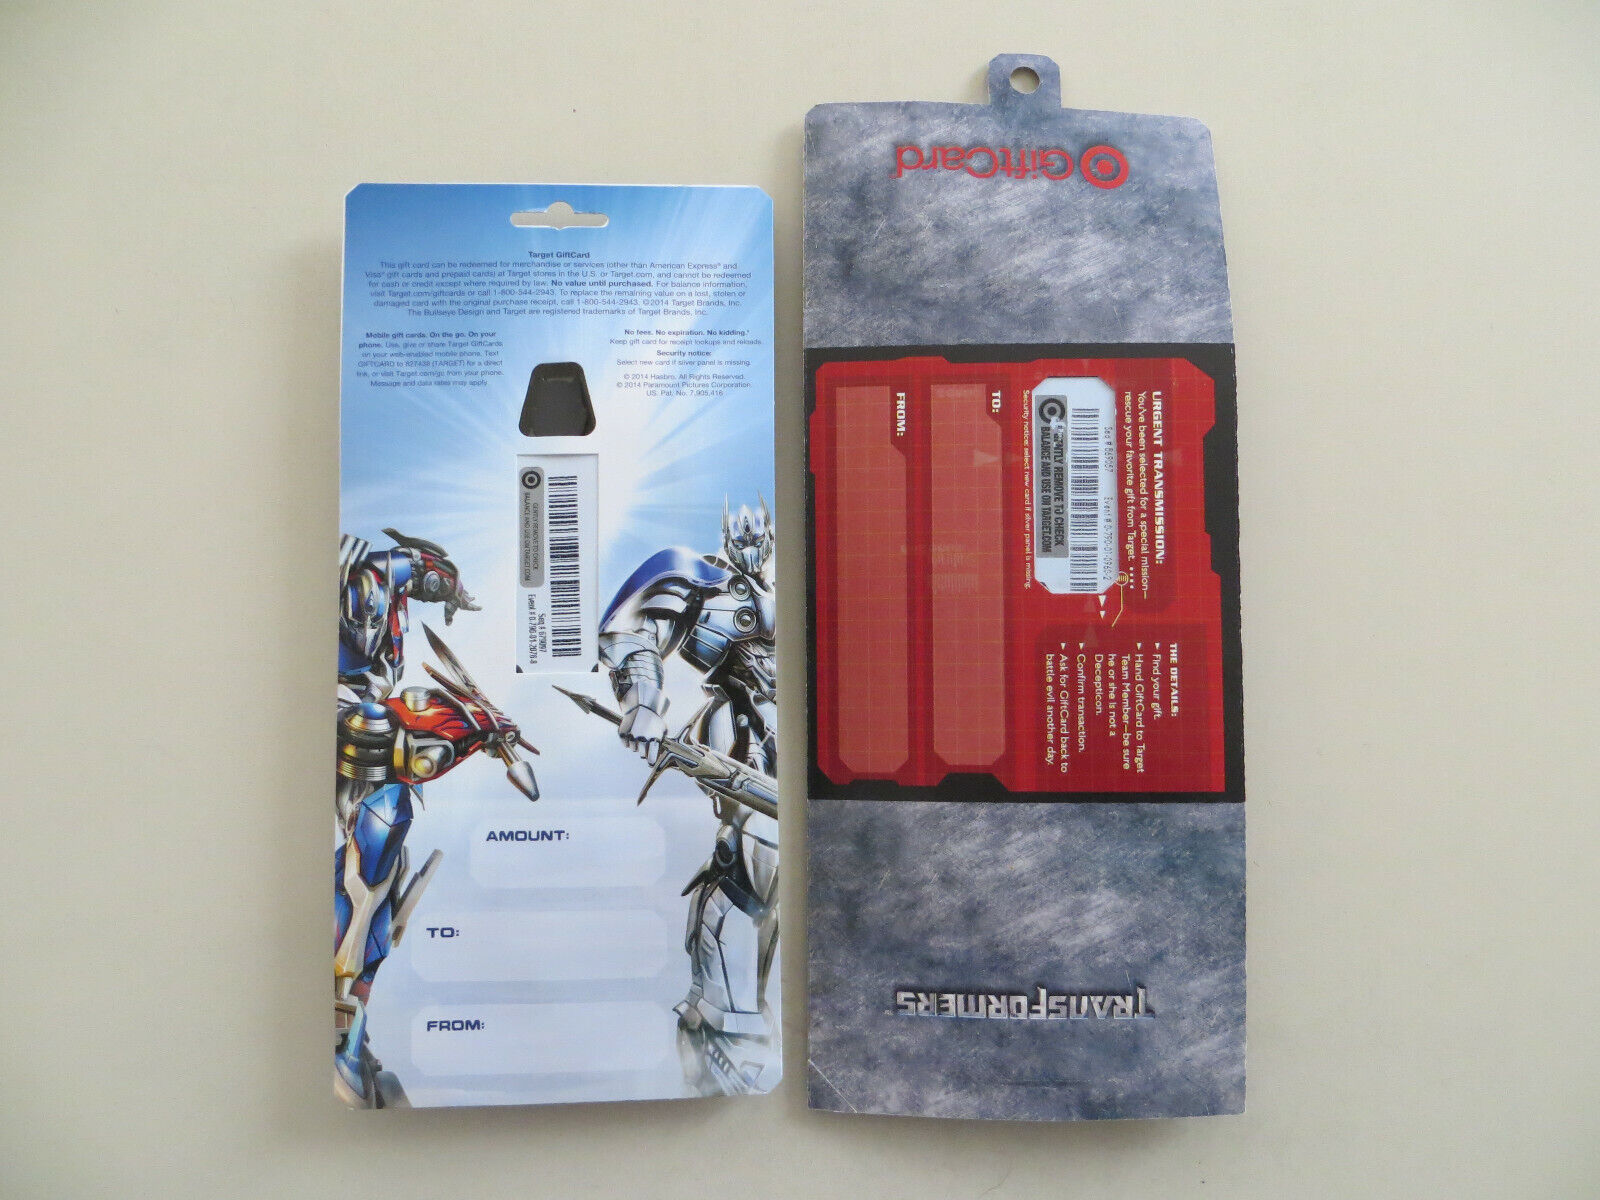 TARGET 2 DIFFERENT TRANSFORMERS GIFT CARDS - CARDS HAVE NO VALUE LOADED ON THEM - $19.99